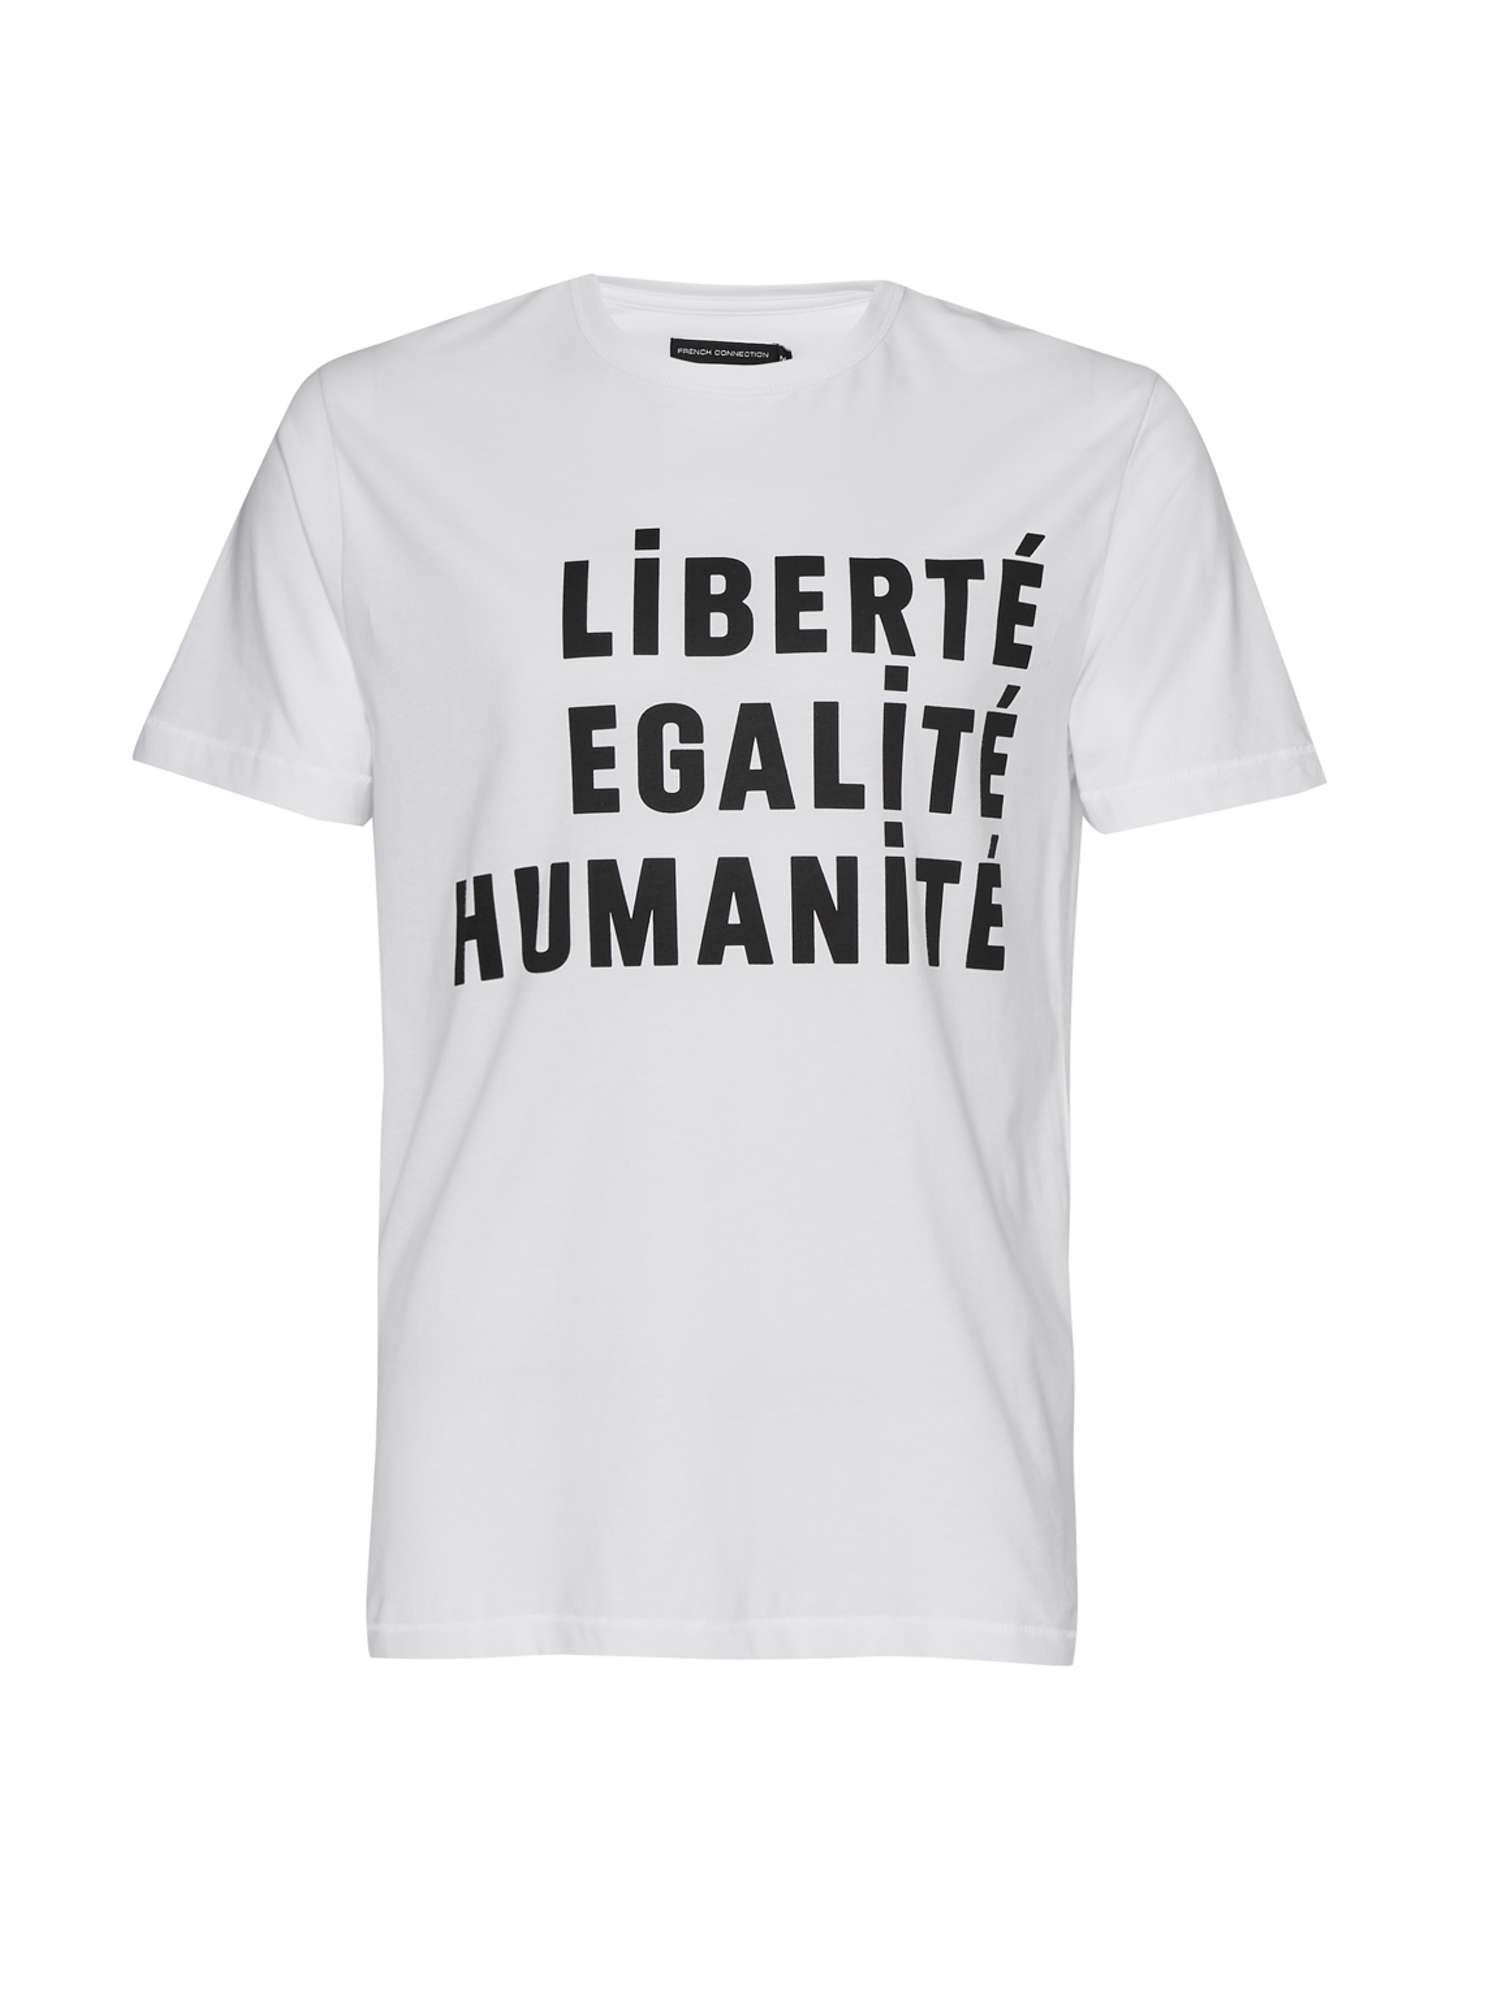 French Connection Egalite Slogan Cotton T-shirt £25